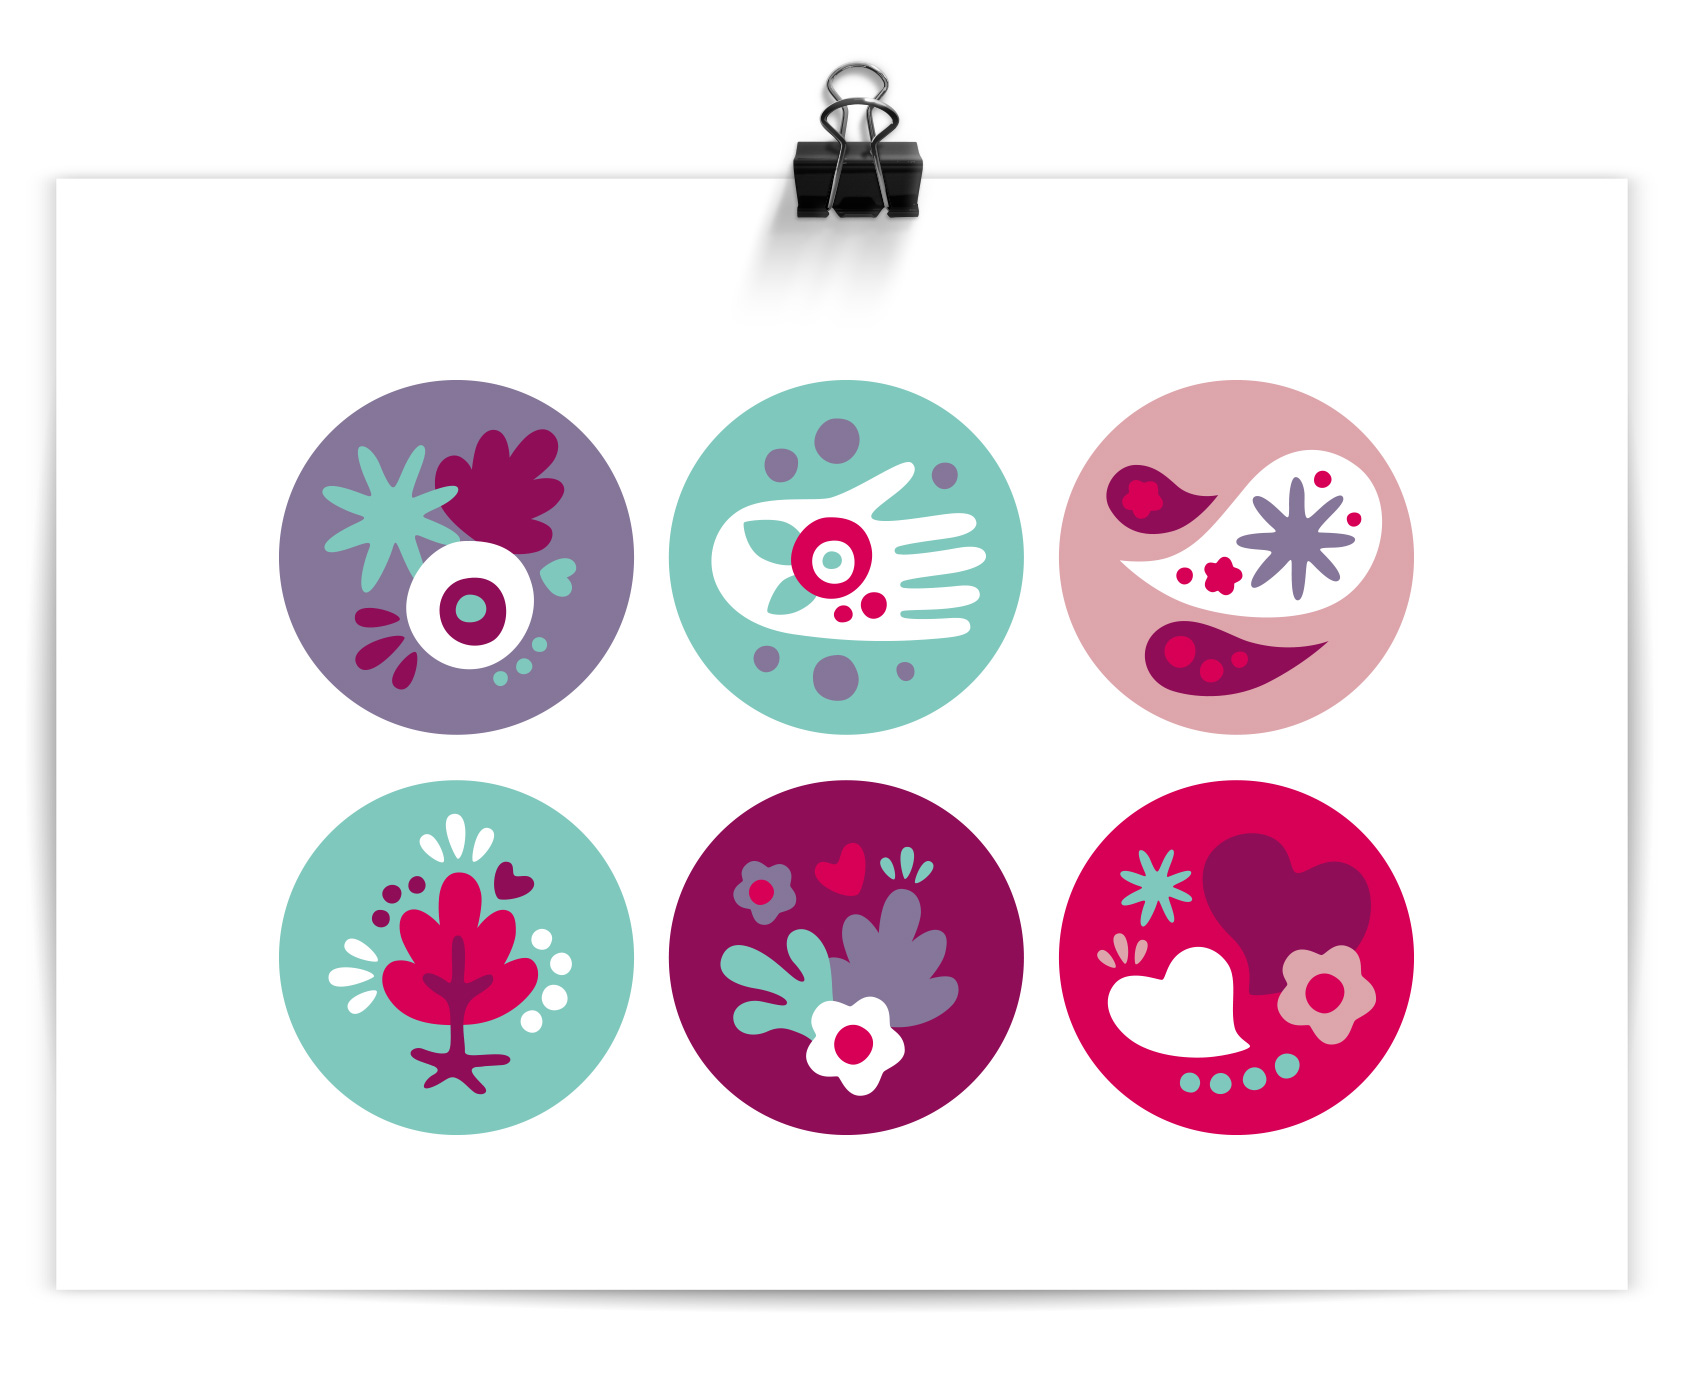 series of six icons with flowers, bursts, hands, speech bubbles etc to portray a soft, female-focused brand look